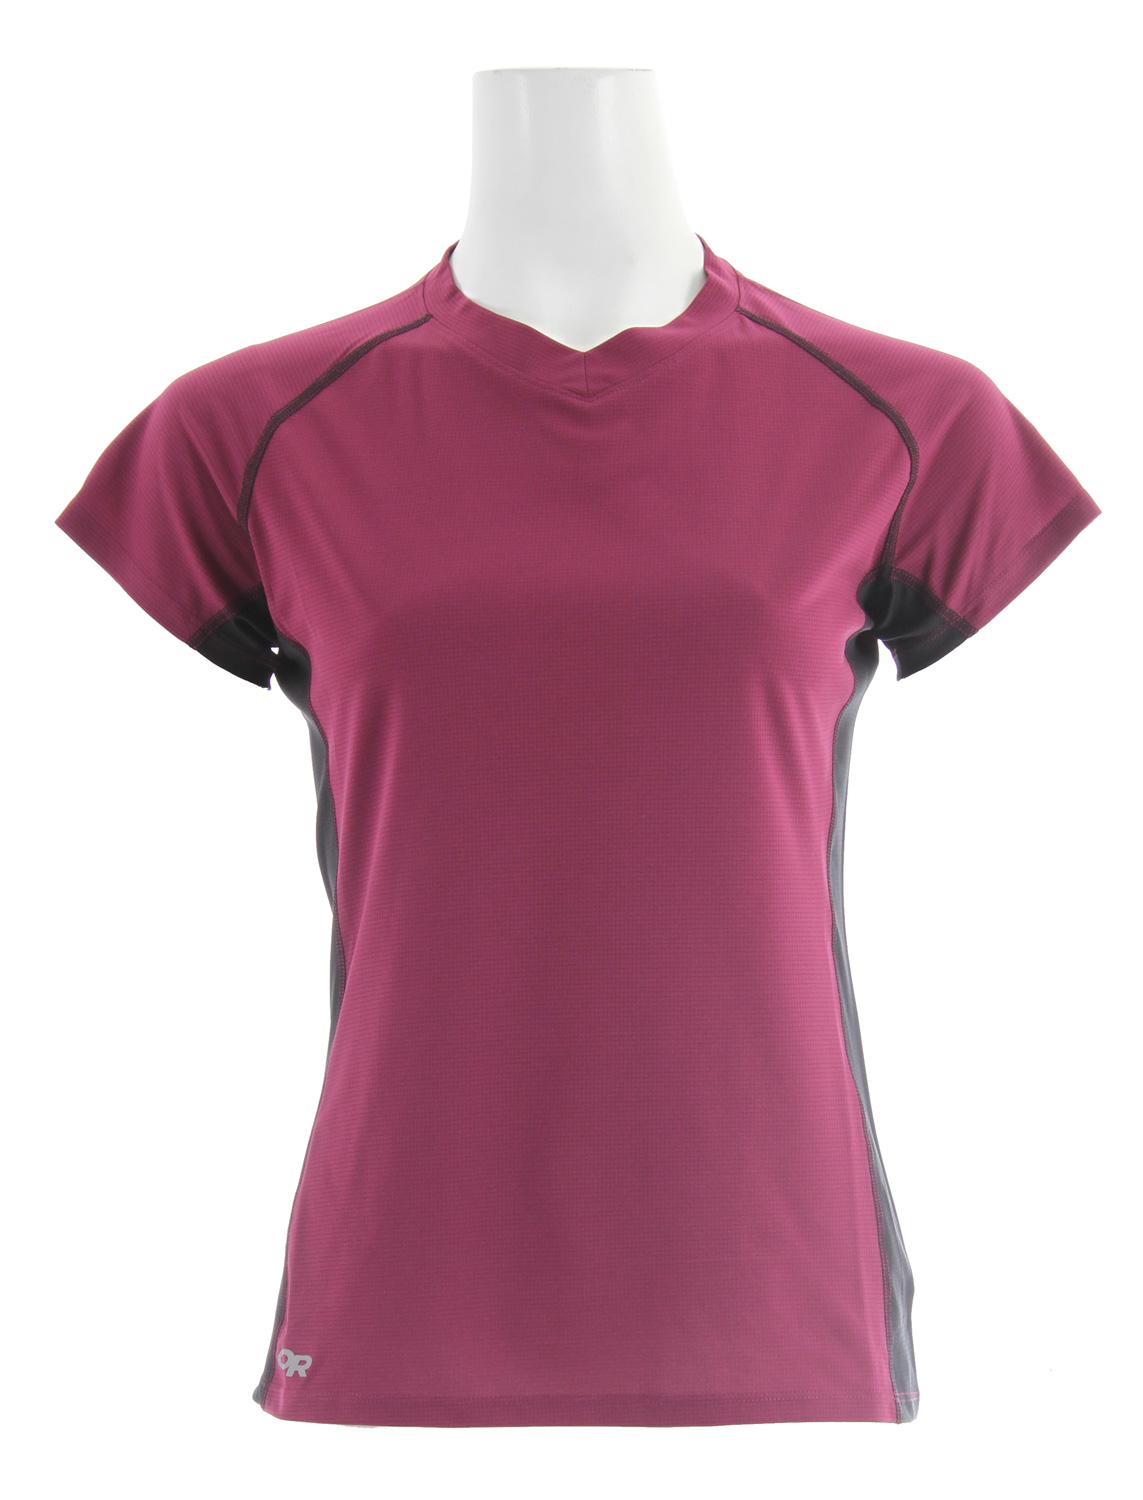 Fitness Pace your run through sunny basins and shaded forests in this light, trail-oriented tee. Polyester AirVent fabric manages moisture and provides UPF 15 sun protection. Flat-seam construction reduces chafing and Polygiene odor control keeps it fresh whether it's your second or tenth day out. Key Features of the Outdoor Research Echo Duo T-Shirt:  Lightweight, polyester AirVent fabric dries quickly and manages moisture; UPF 15  Polygiene active odor control  Flat-seam construction reduces chafing  Raglan sleeves  Avg. Weight (oz./g :    2.5 / 71(size medium - $21.95